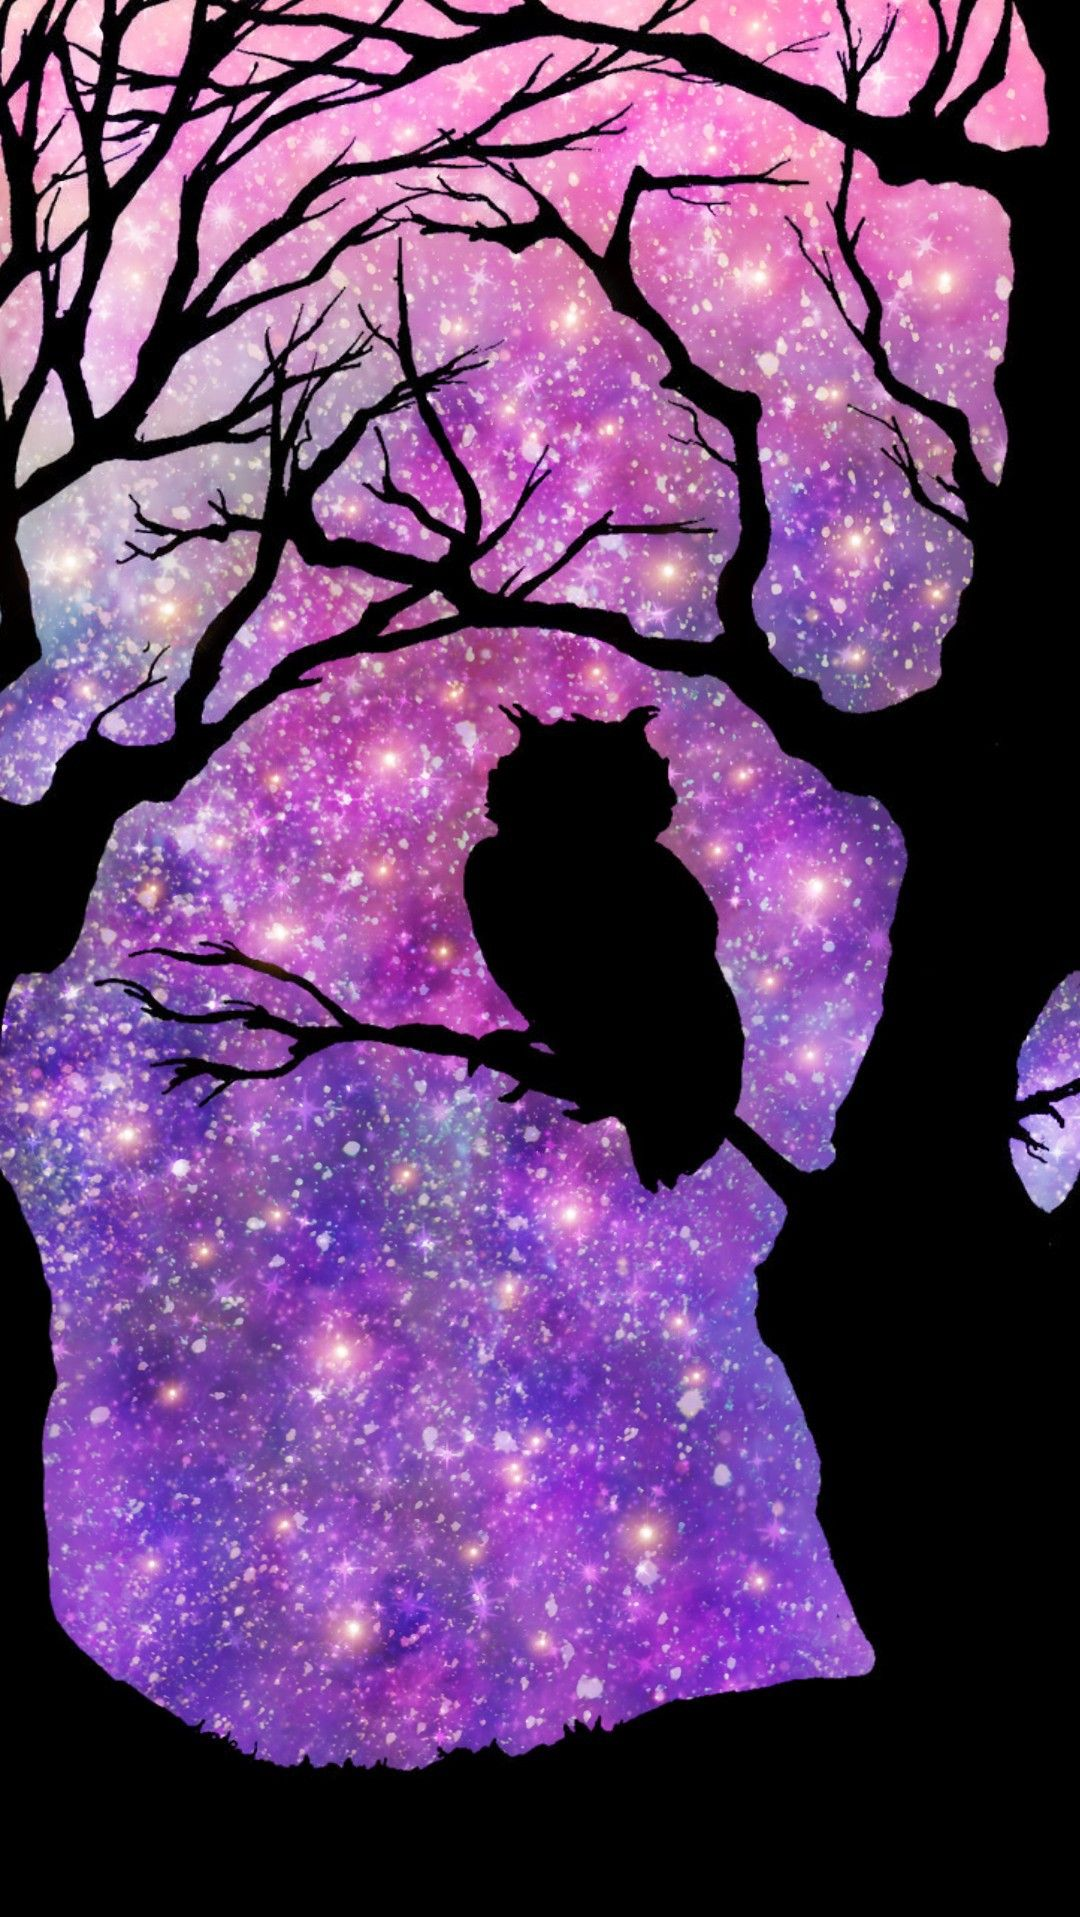 Galaxy Night Sky Owl Made By Me Purple Sparkly Wallpapers Backgrounds Sparkles Glittery Art Night S Owl Wallpaper Owl Wallpaper Iphone Owl Background